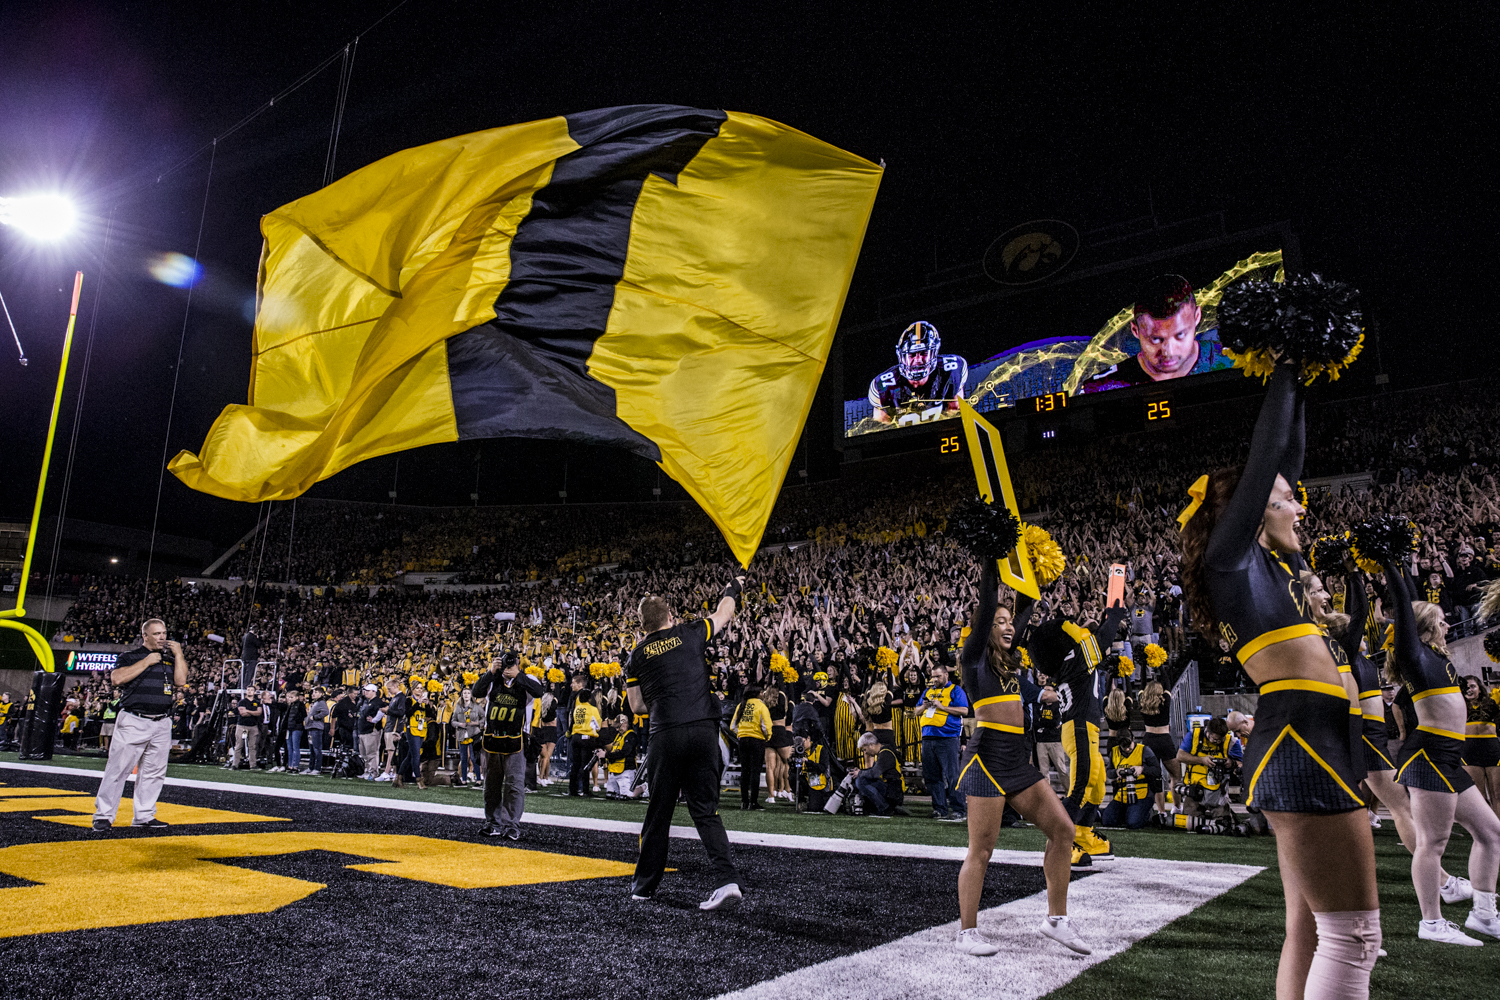 A+member+of+the+Iowa+spirit+squad+waves+an+%22I%22+flag+during+Iowa%27s+game+against+Wisconsin+at+Kinnick+Stadium+on+Saturday%2C+September+22%2C+2018.+The+Badgers+defeated+the+Hawkeyes+28-17.